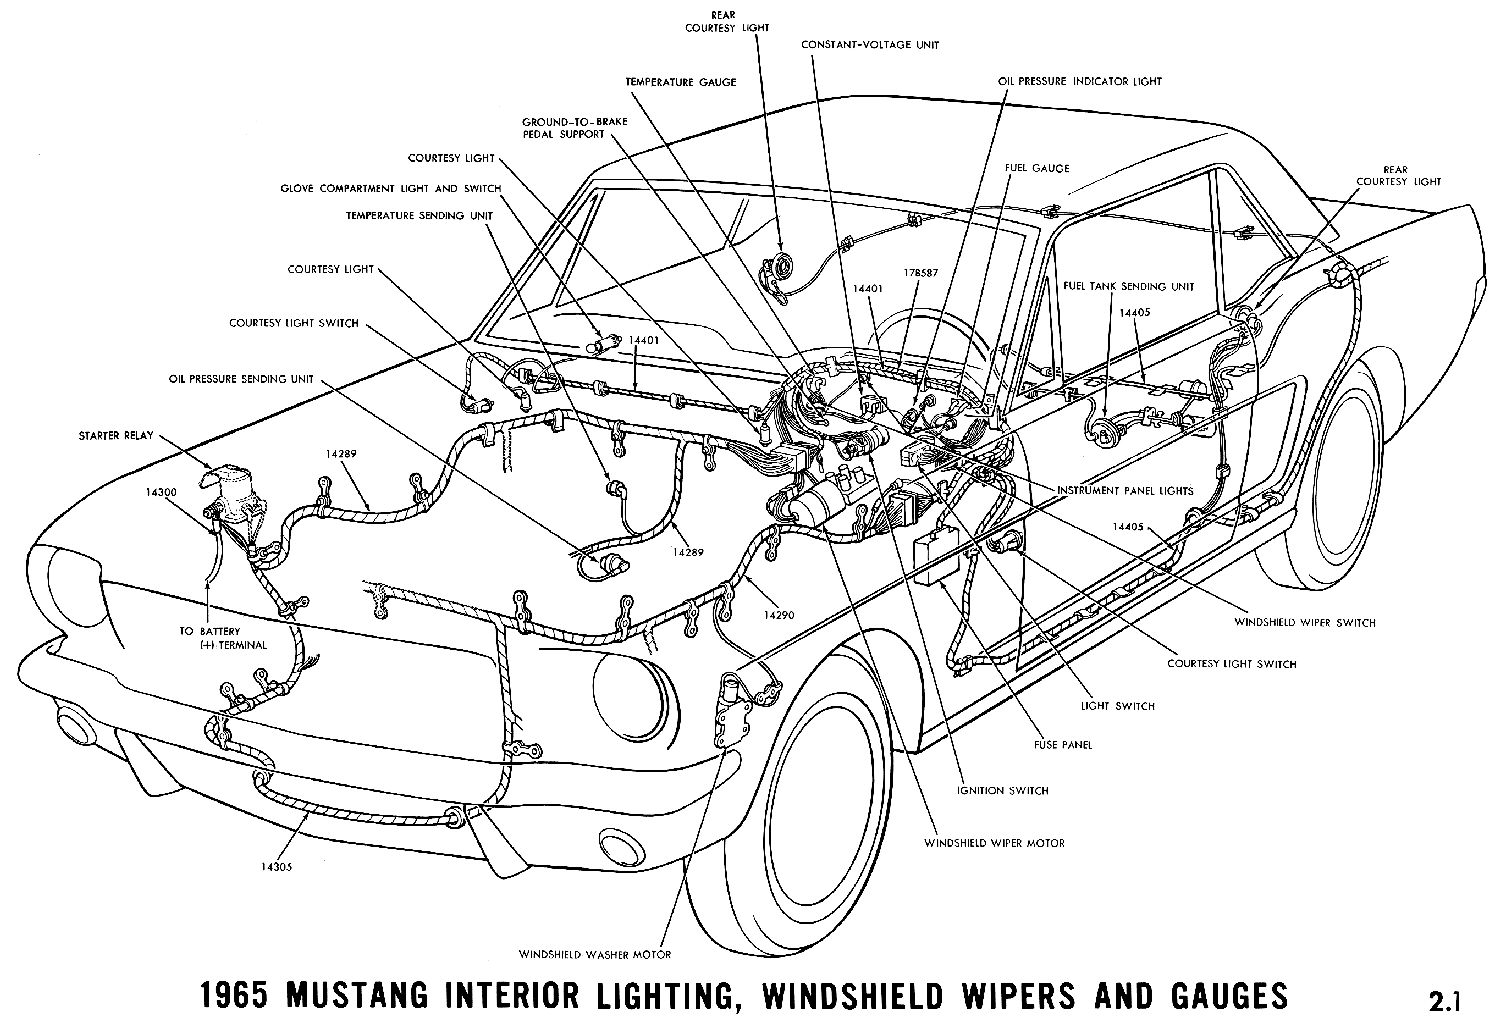 1965 Mustang Wiring Diagrams Average Joe Restoration 2001 Gt Headlight Diagram Interior Lights Windshield Wiper And Gauges Pictorial Or Schematic